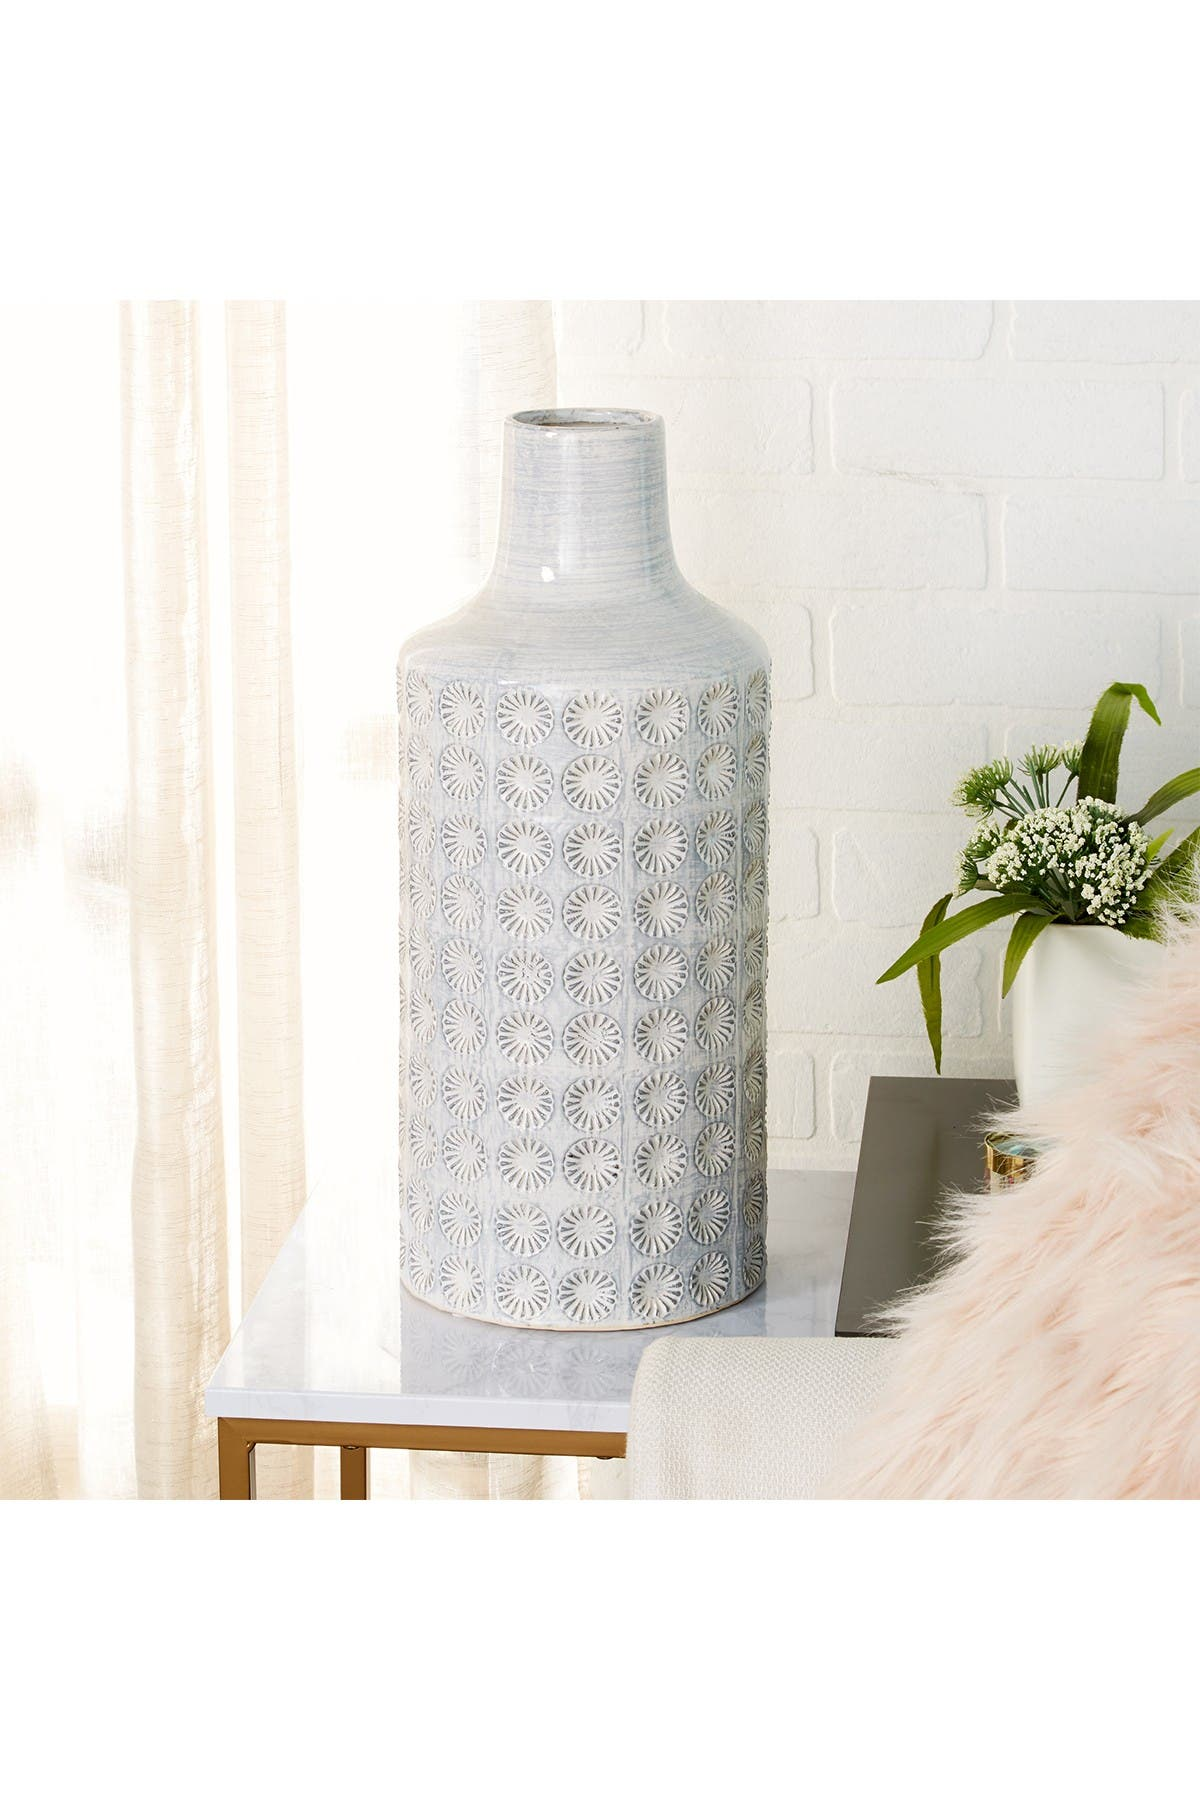 Image of CosmoLiving by Cosmopolitan Large Round Blue & White French Country Rosette Ceramic Floor Vase